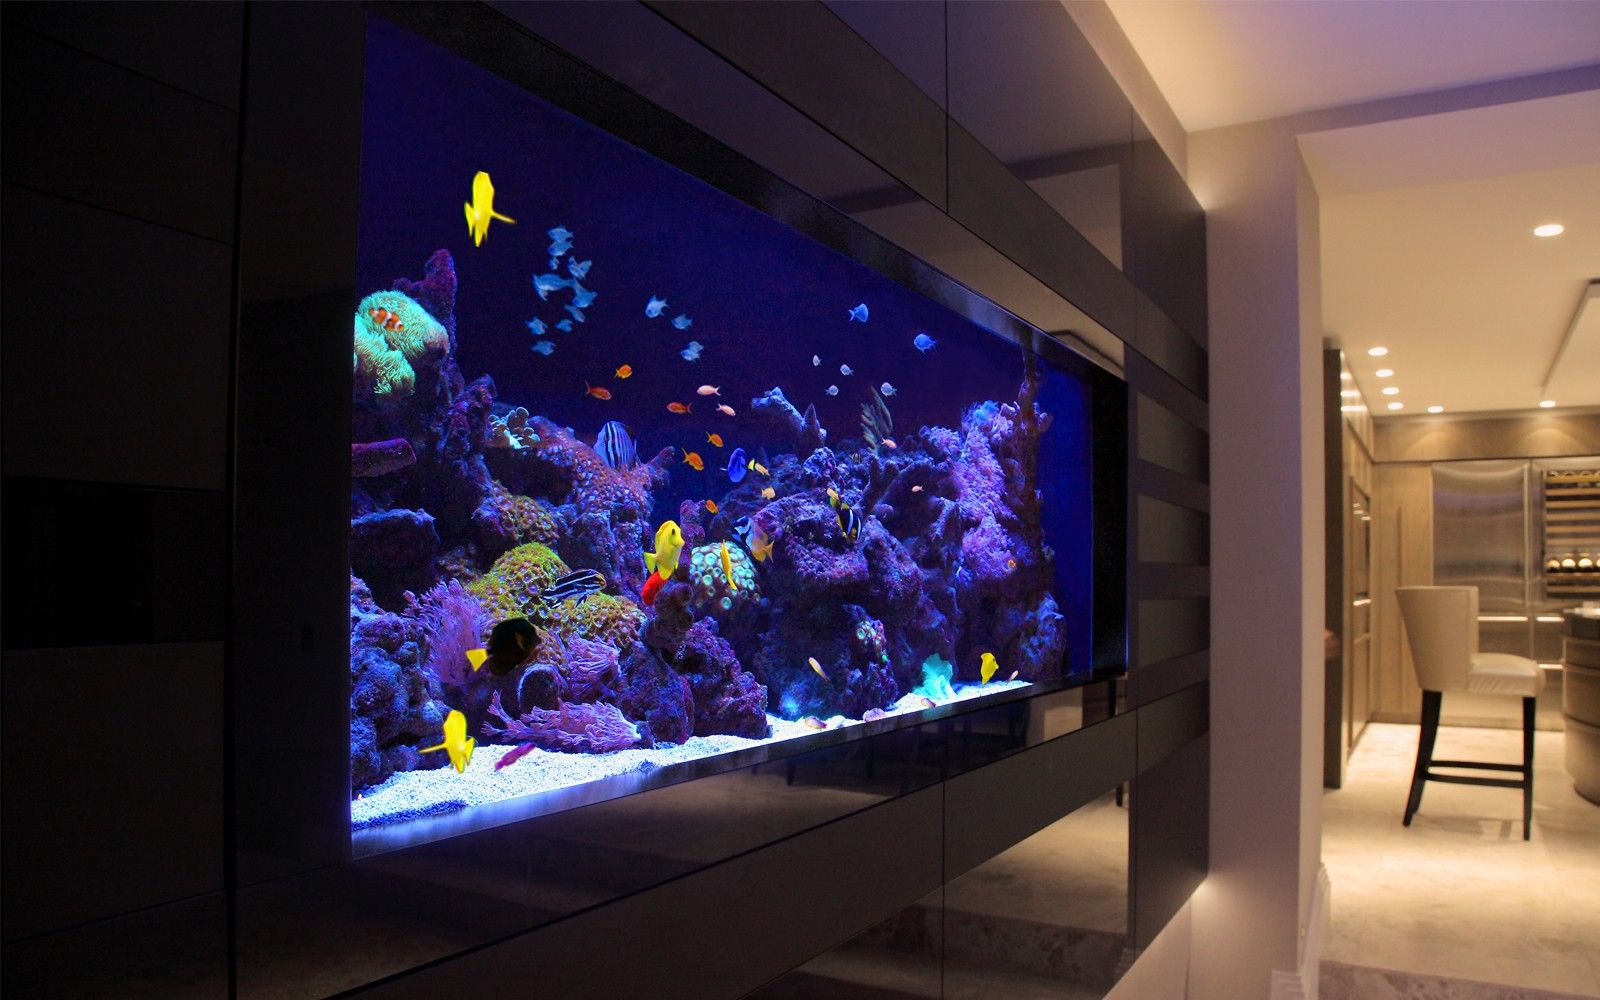 Aquarium Supplies Australia Buy Fish Tank Buy Marine Fish Online Buy Aquarium Fish Buy Aquarium Filter O Fish Tank Wall Aquarium Architecture Custom Fish Tanks